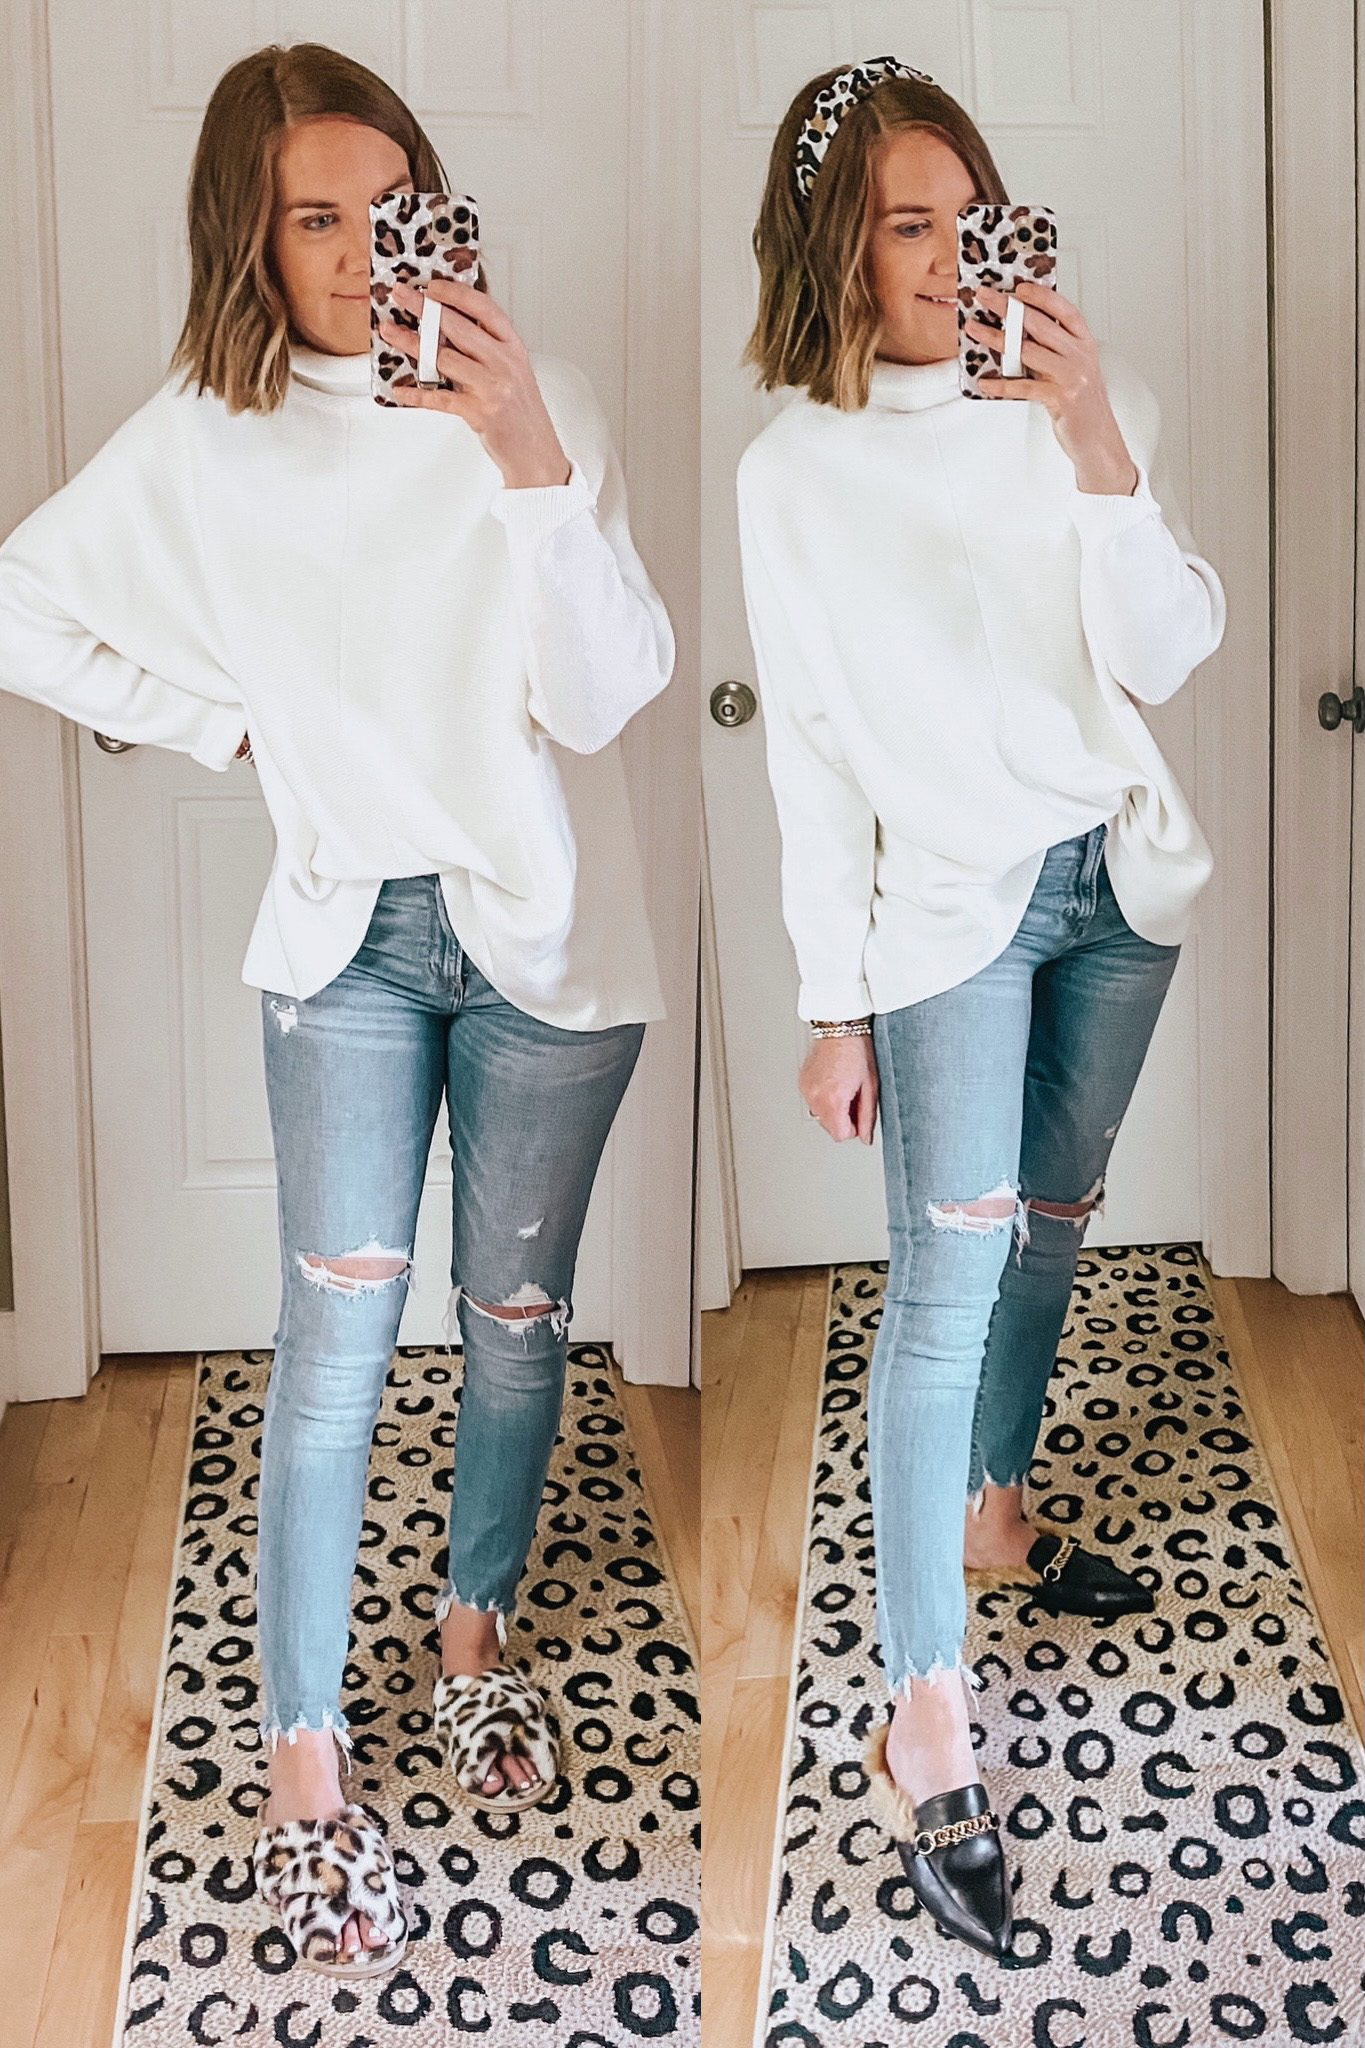 the best Amazon sweater, Free People dupe, slouchy sweater, turtleneck sweater